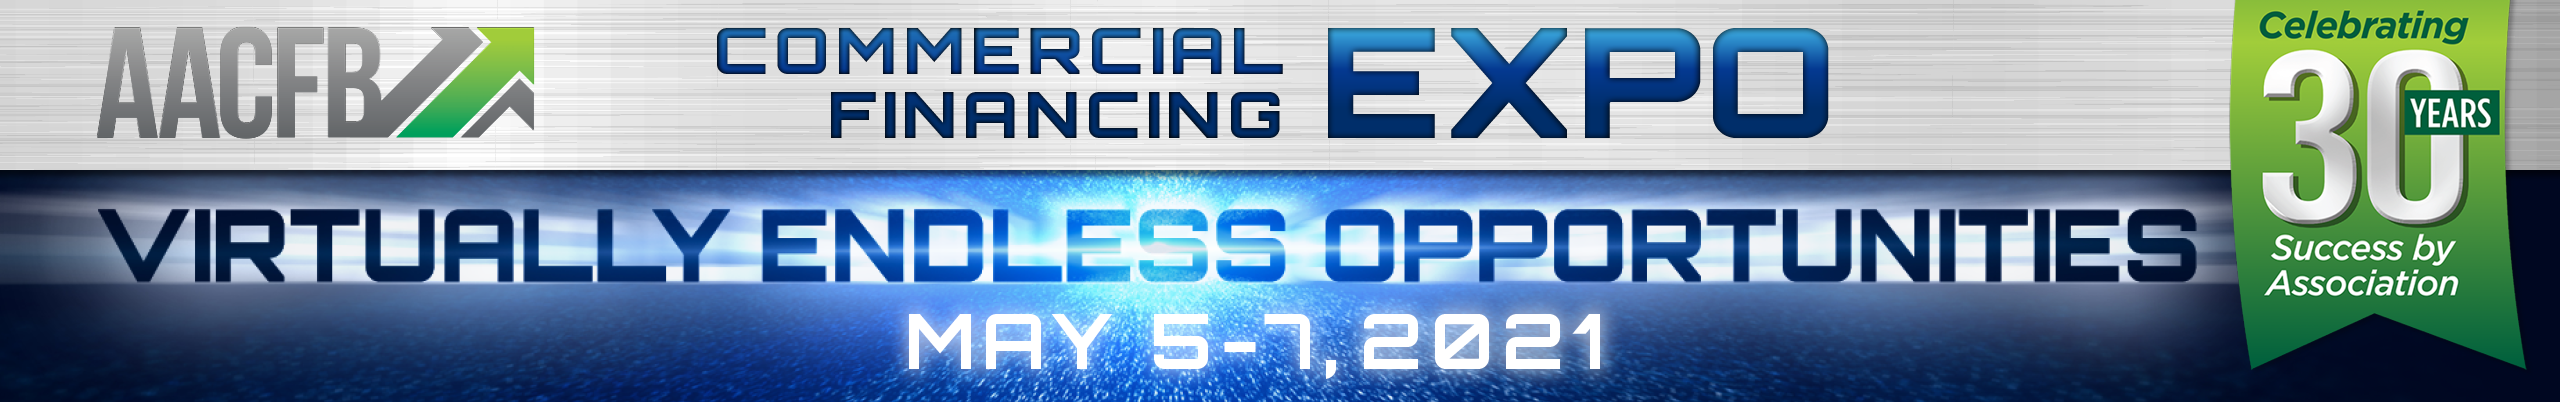 Commercial Financing Expo